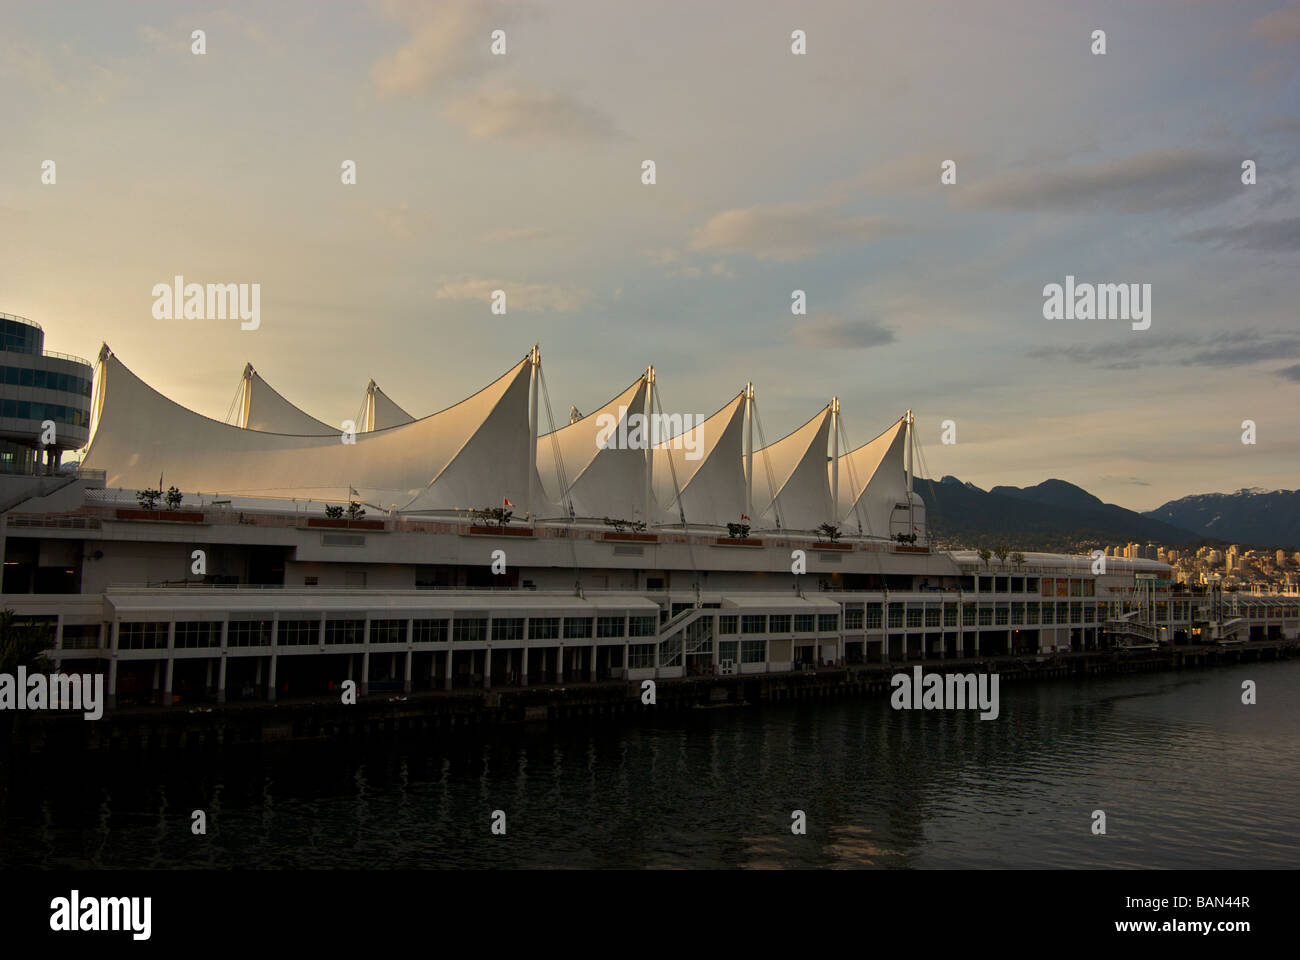 Teflon sails glow in warm setting sun at Canada Place Vancouver Trade and Convention Centre - Stock Image